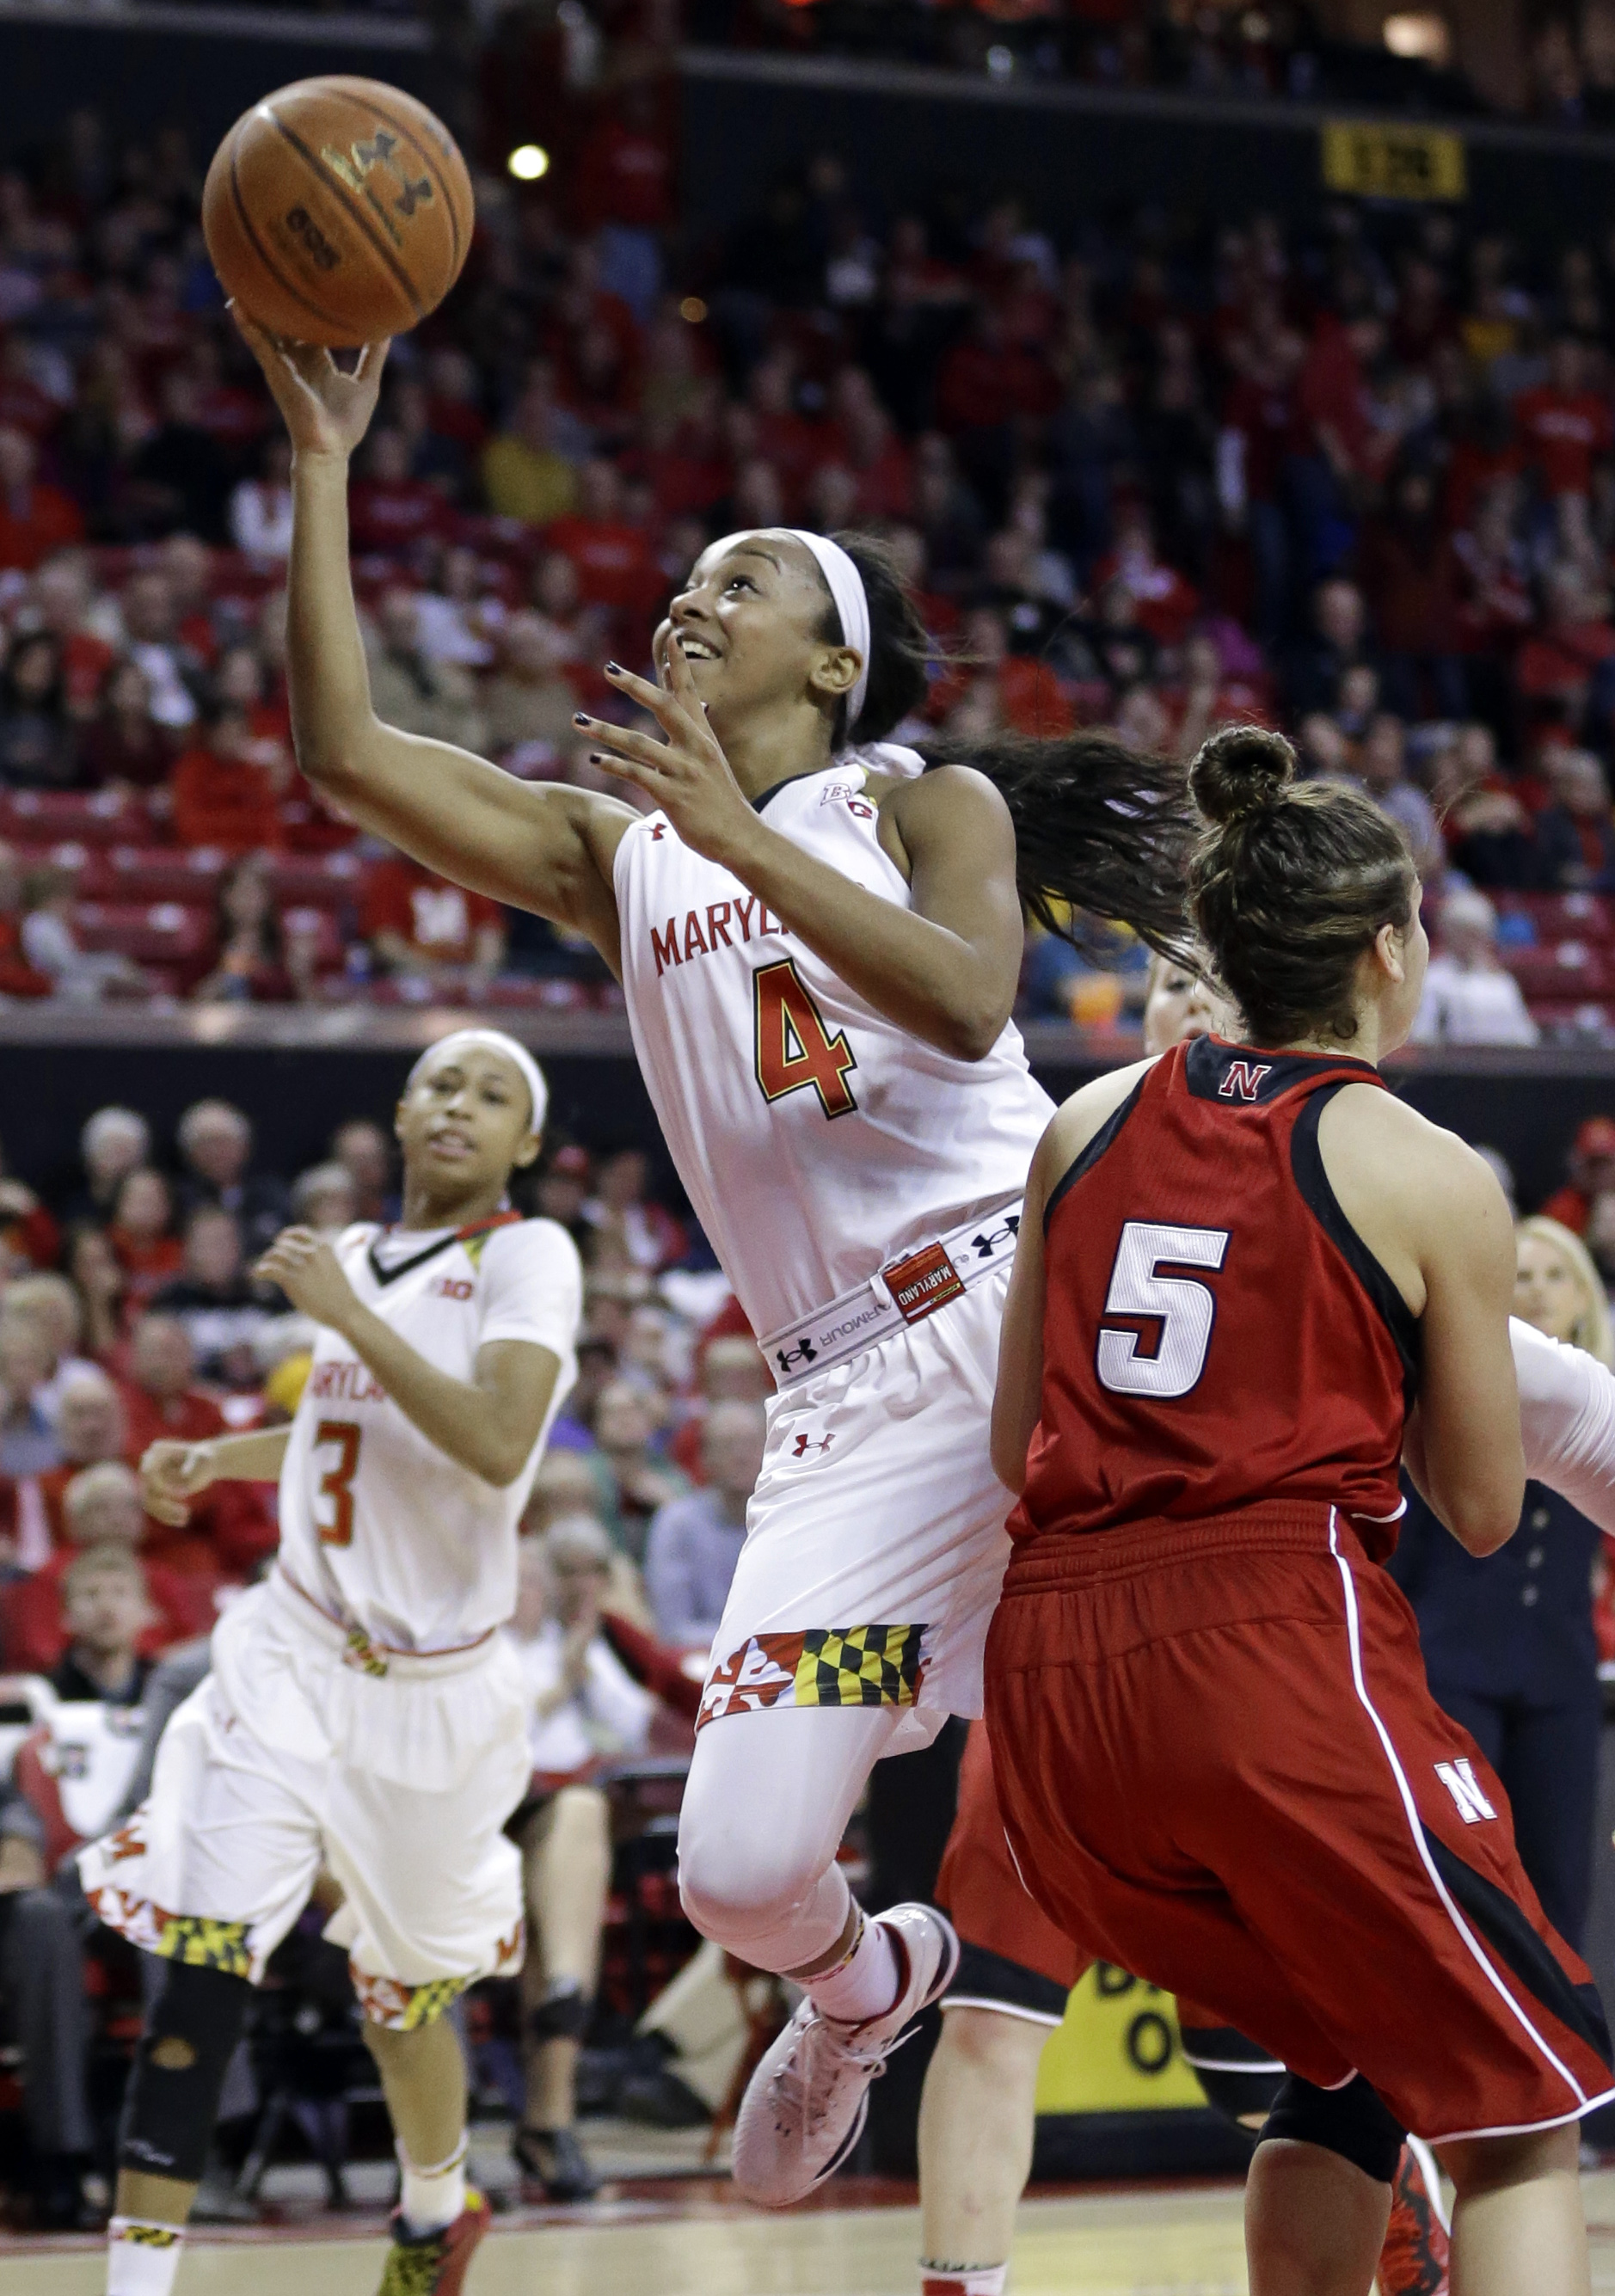 FILE - In this Feb. 8, 2015, file photo, Maryland guard Lexie Brown (4) shoots over Nebraska guard Natalie Romeo in the second half of an NCAA college basketball game in College Park, Md. Lexie Brown is settling in at Duke, and the school has decided to m